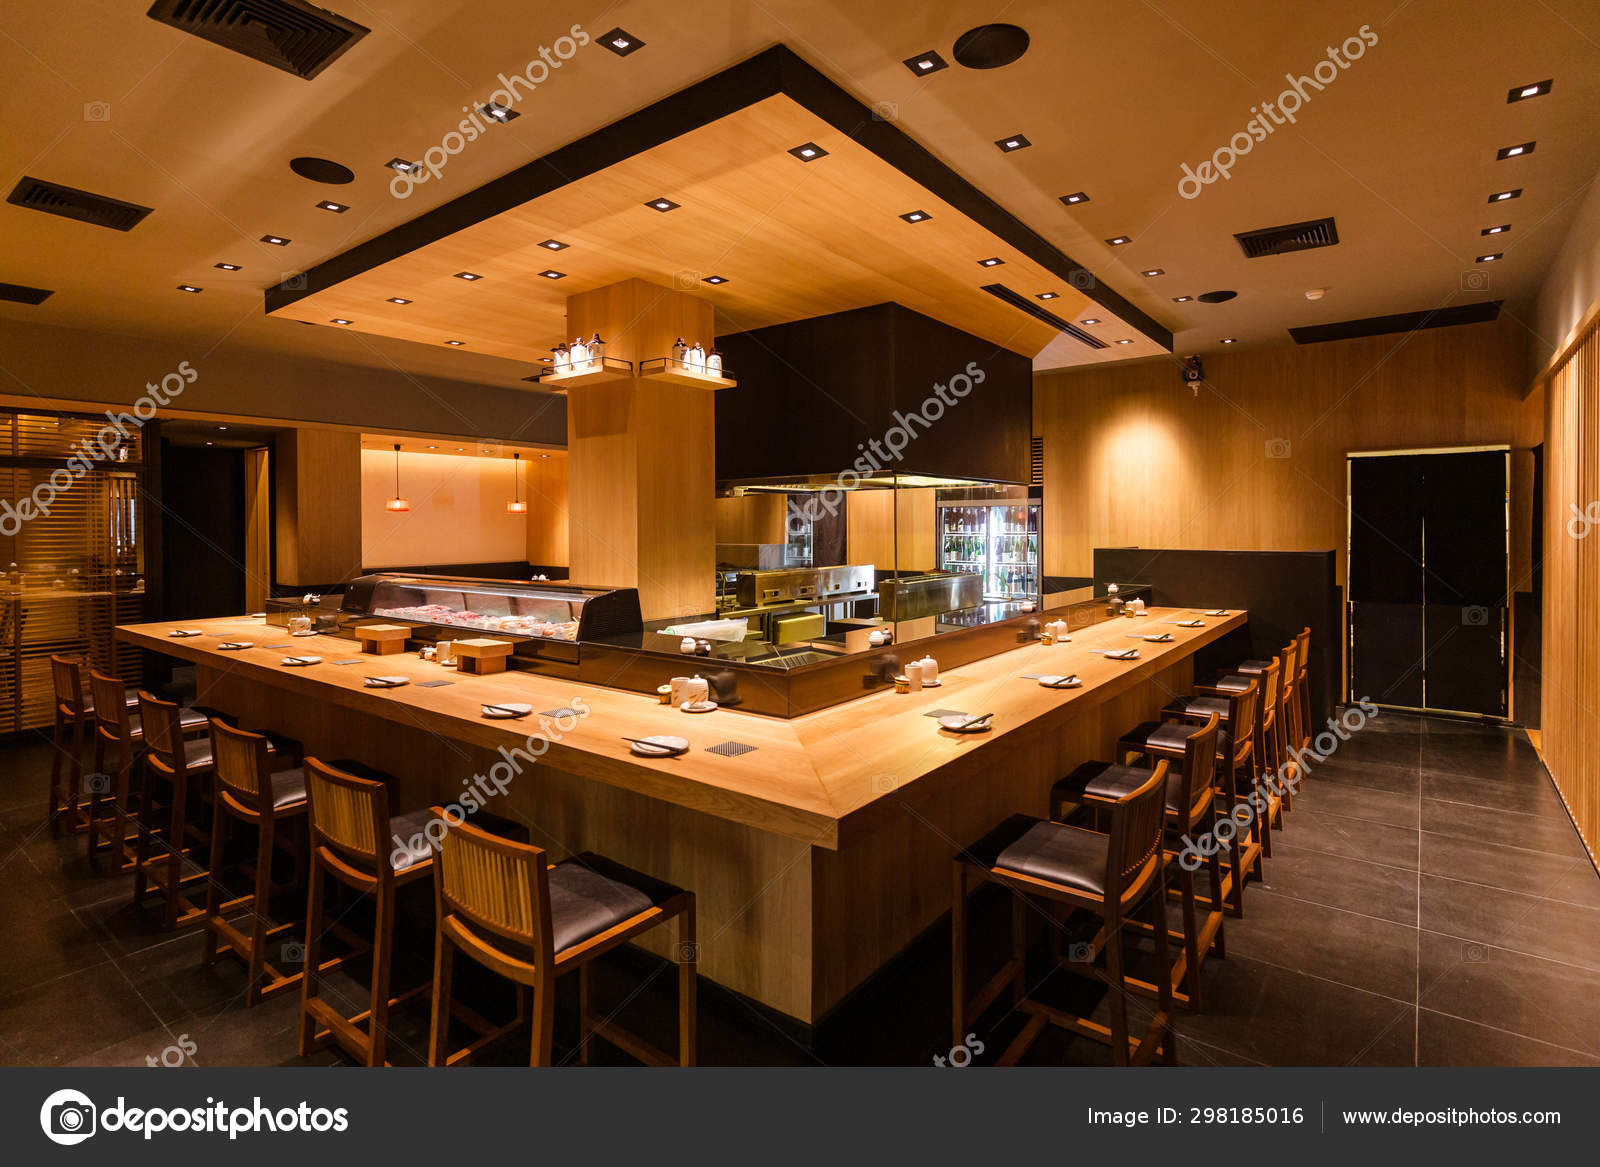 Yakitori Japanese Grilled Skewer Restaurant Counter Bar Grill Kitchen Area Stock Editorial Photo C Artitwpd 298185016